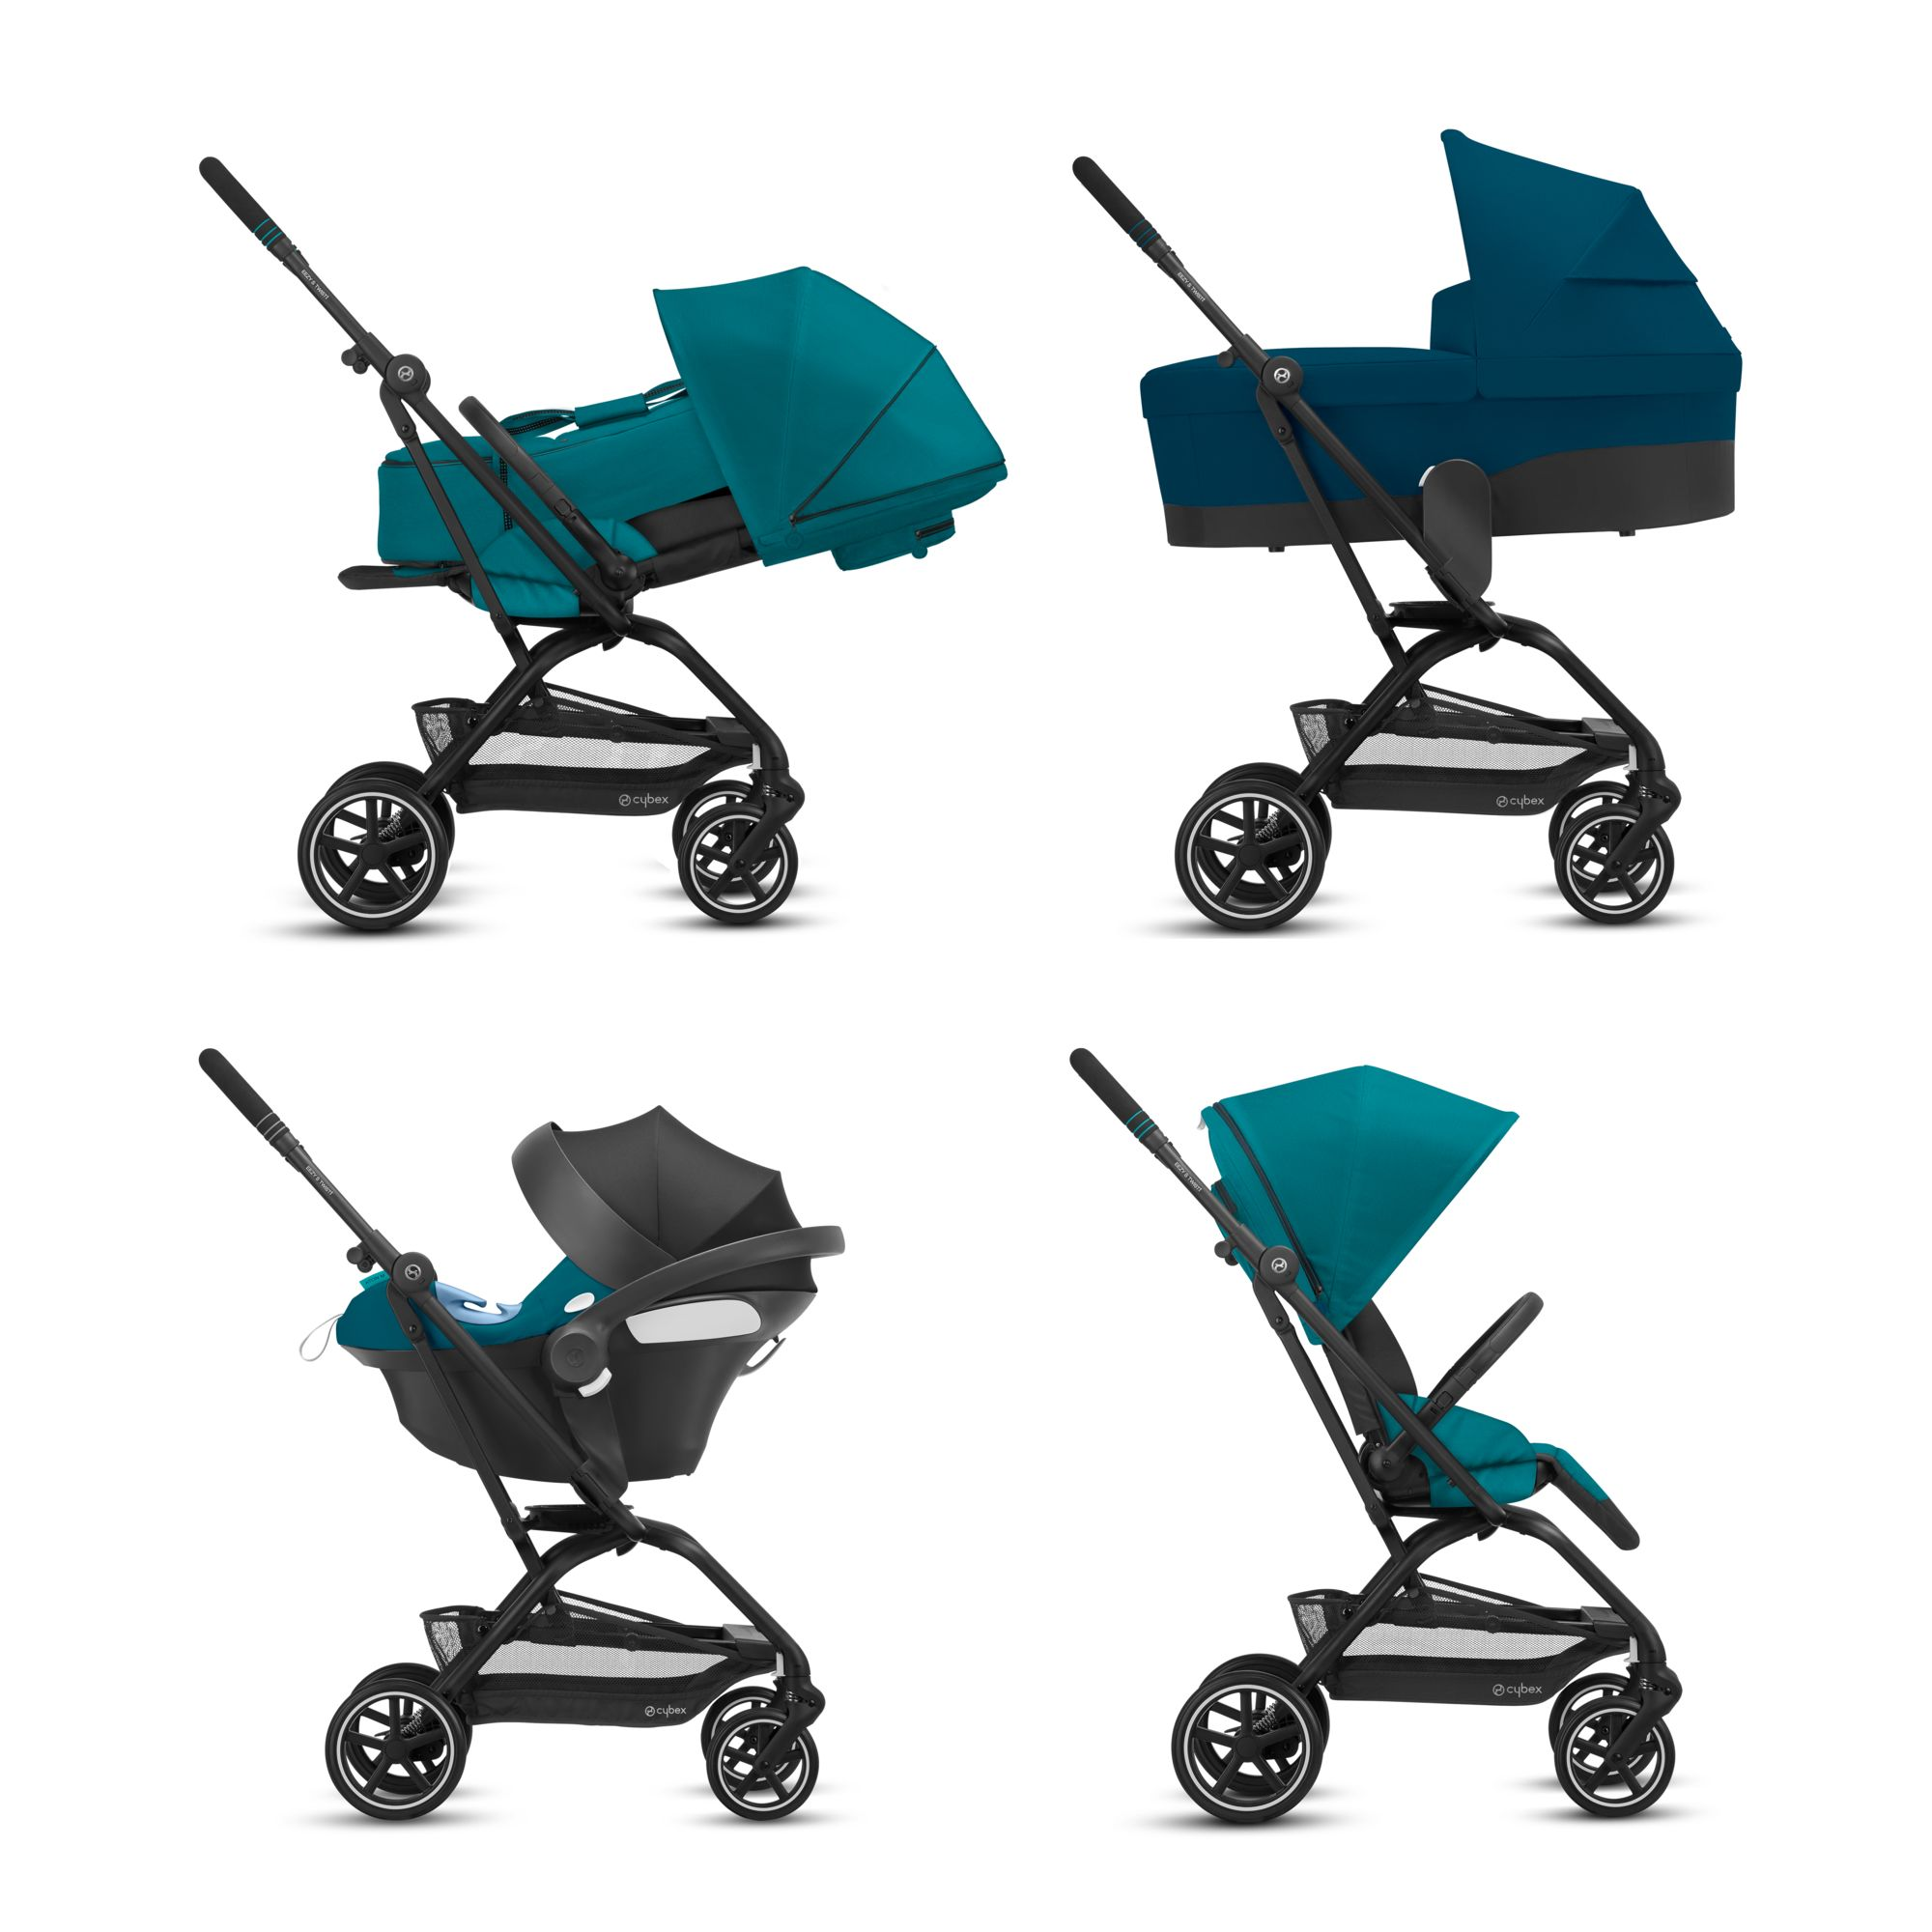 Eezy S Twist Plus 2 4-in-1 Travel System